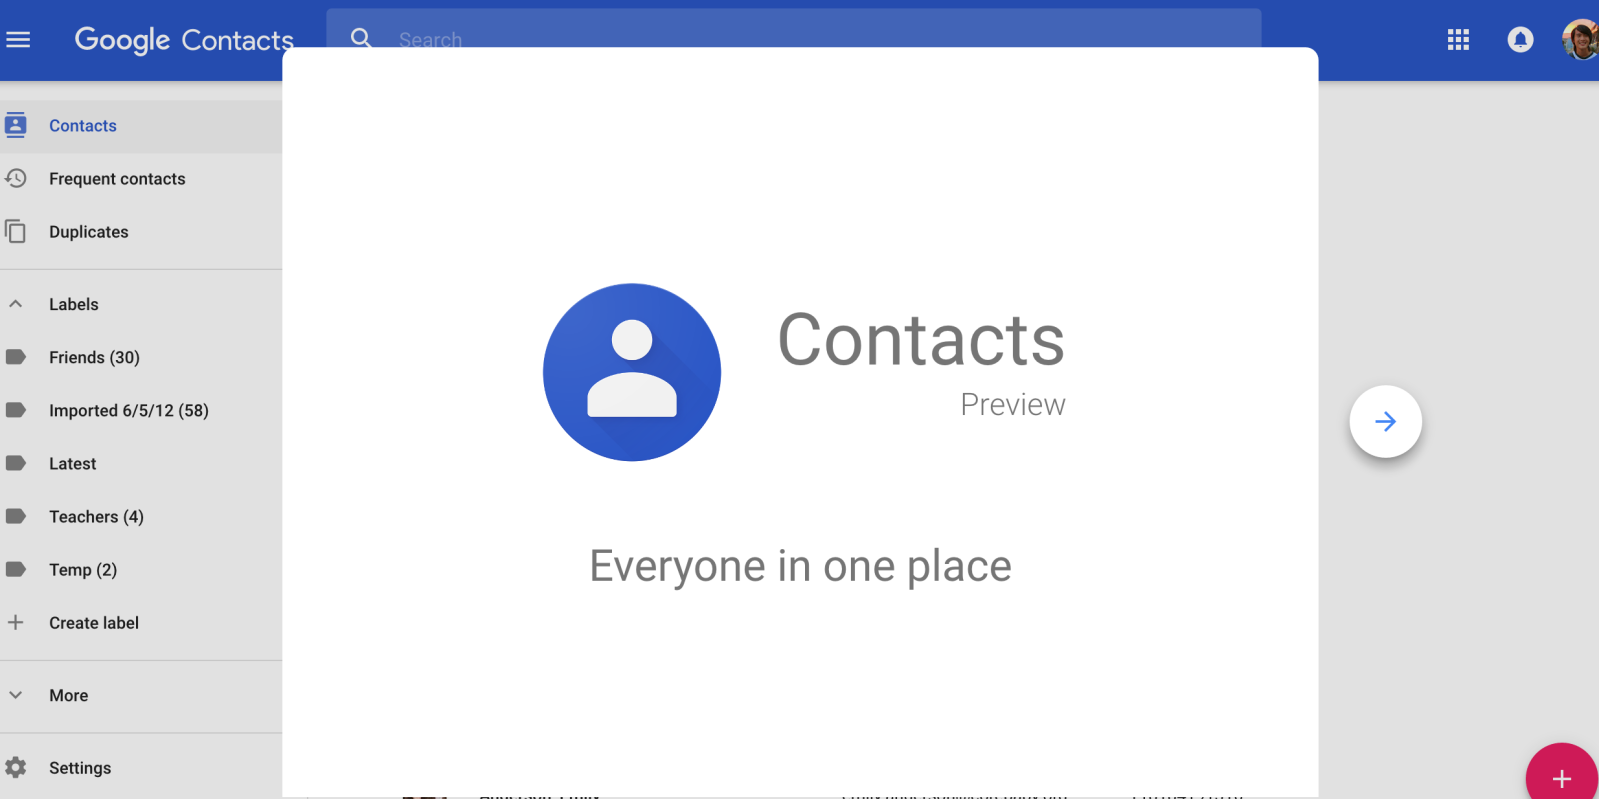 Old Google Contacts will be deprecated next year as new design